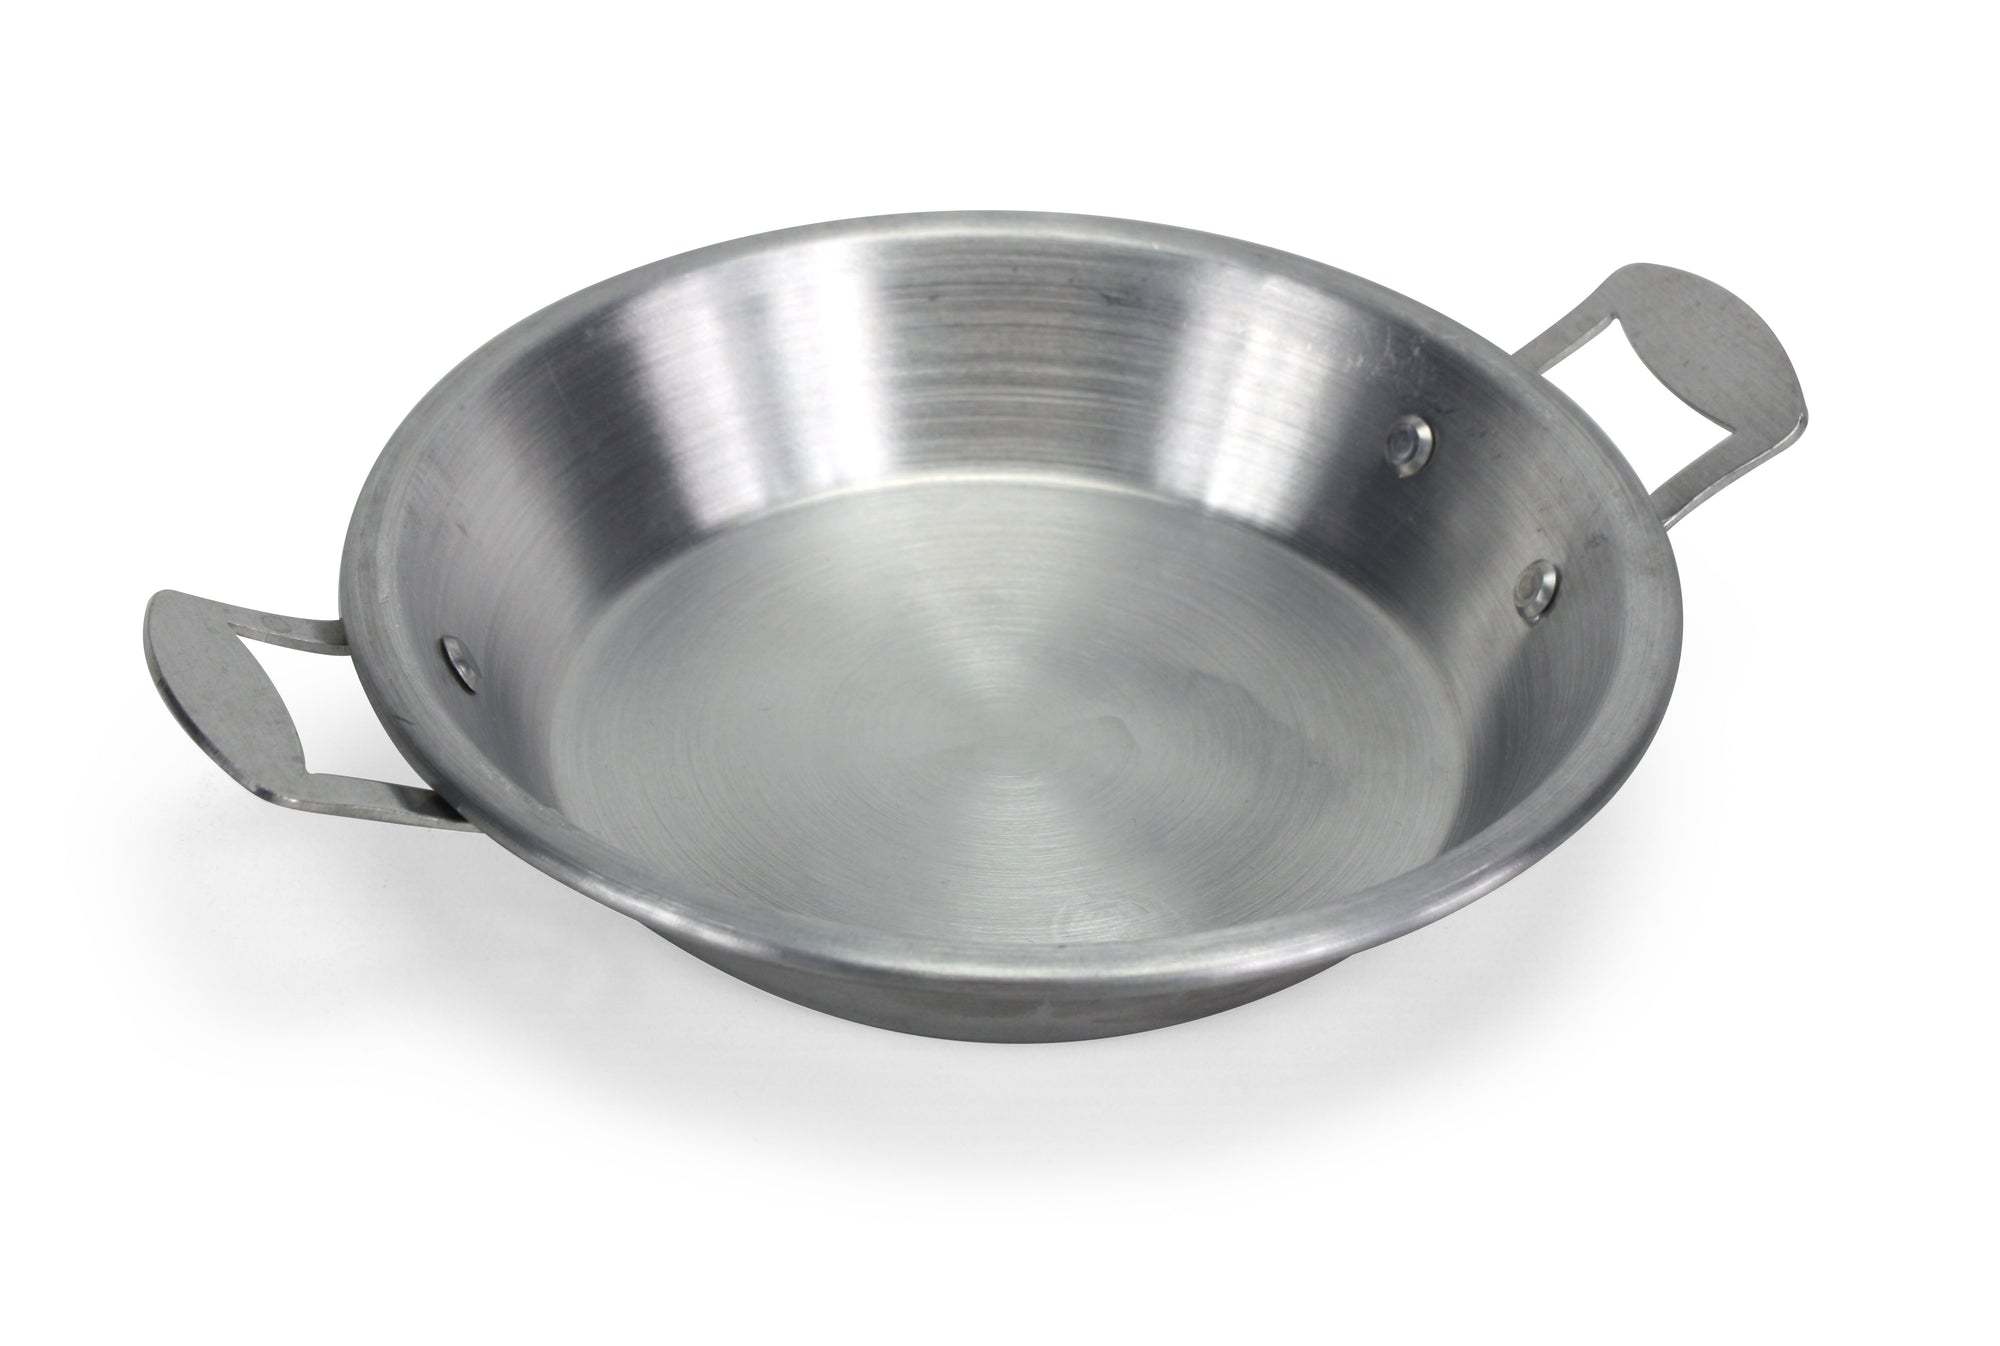 Banh Mi Hoa Ma grill pan, double handle - farangshop-co